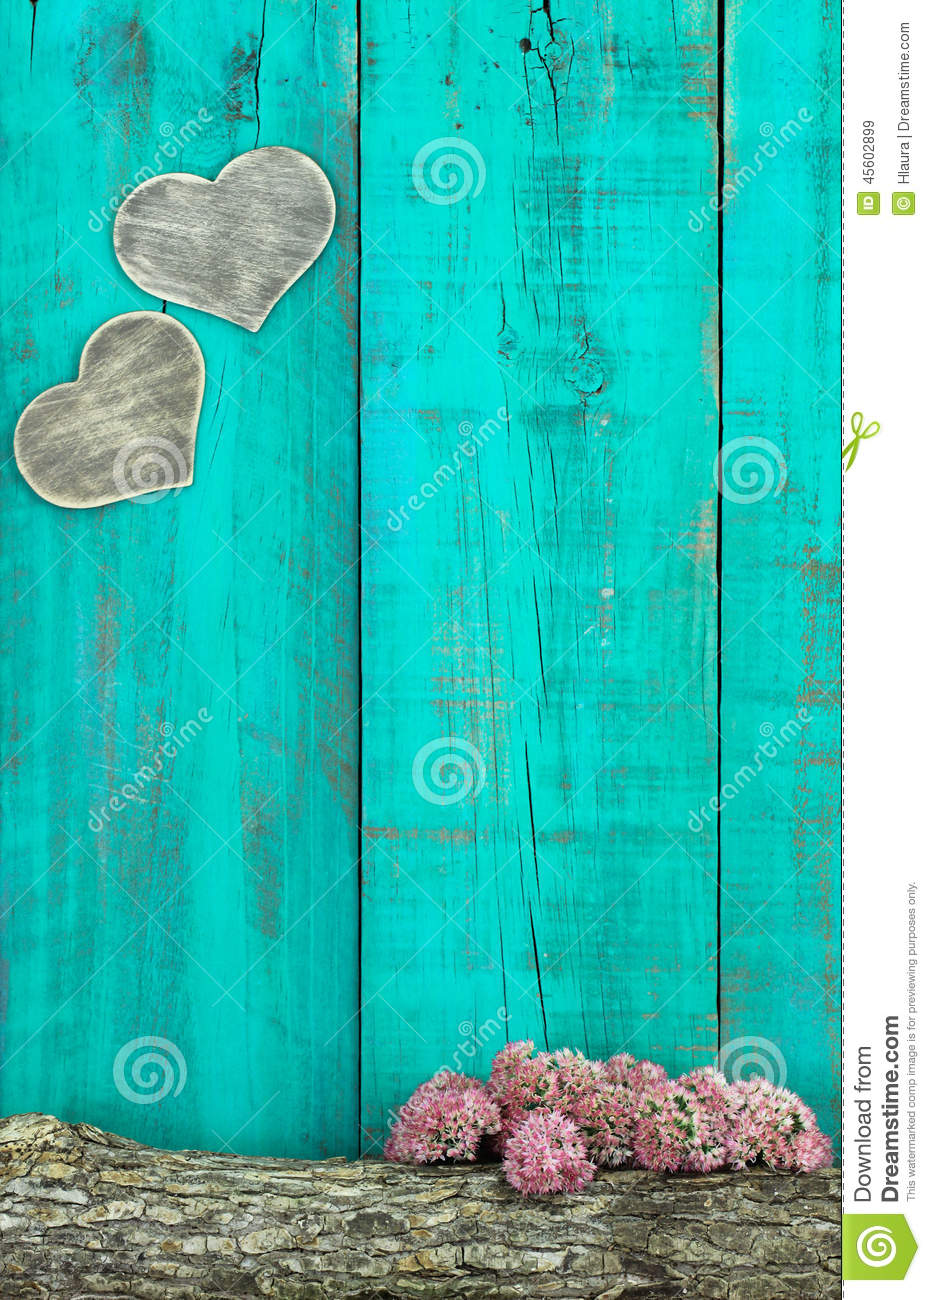 Wooden Hearts Hanging On Antique Teal Blue Fence With Log ...